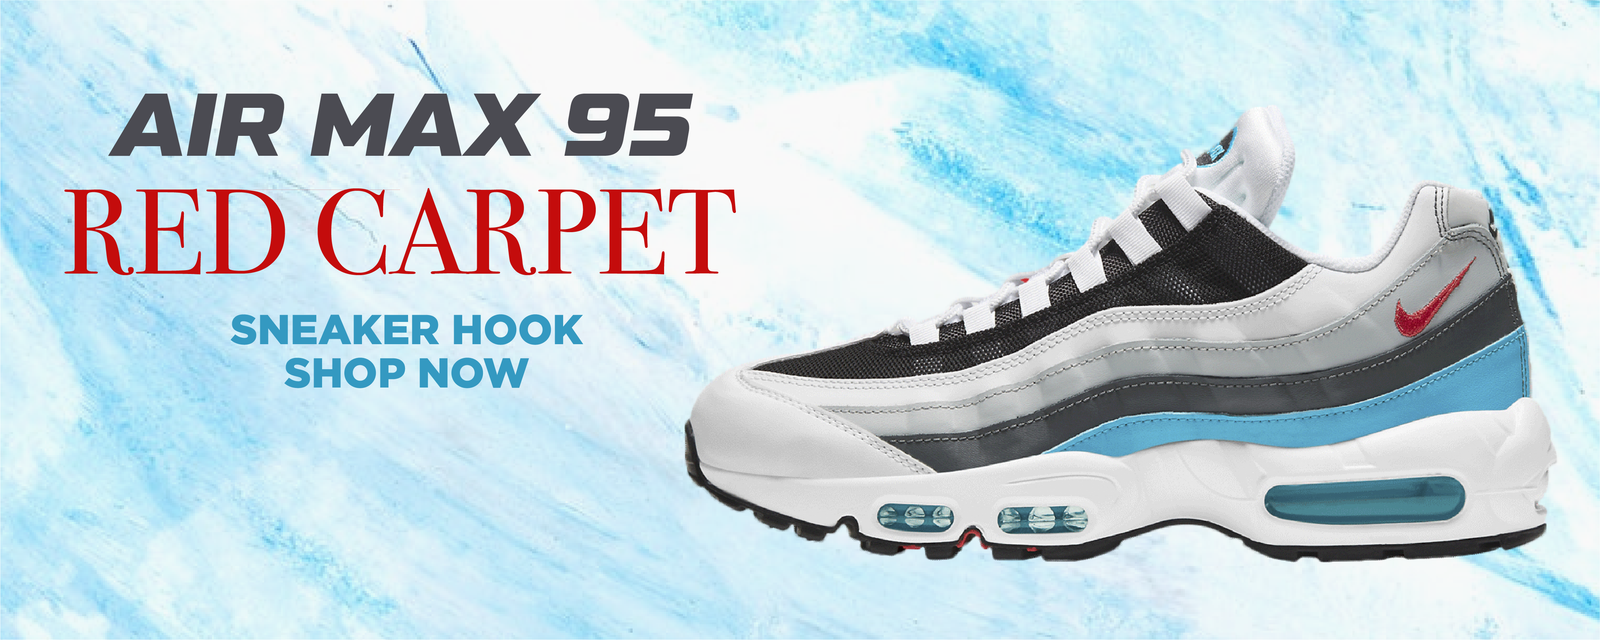 Air Max 95 Red Carpet Clothing to match Sneakers | Clothing to match Nike Air Max 95 Red Carpet Shoes